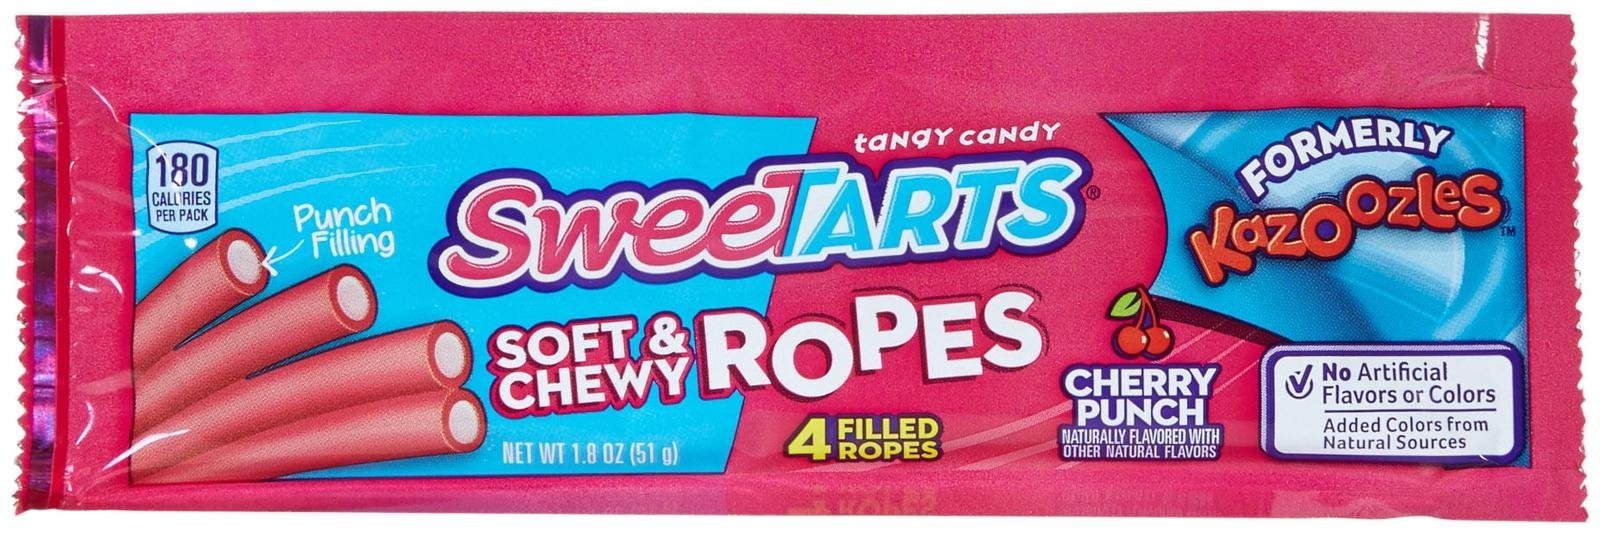 Wonka Sweetarts Candy - Soft & Chewy Ropes - 1.8 oz - 24 ct